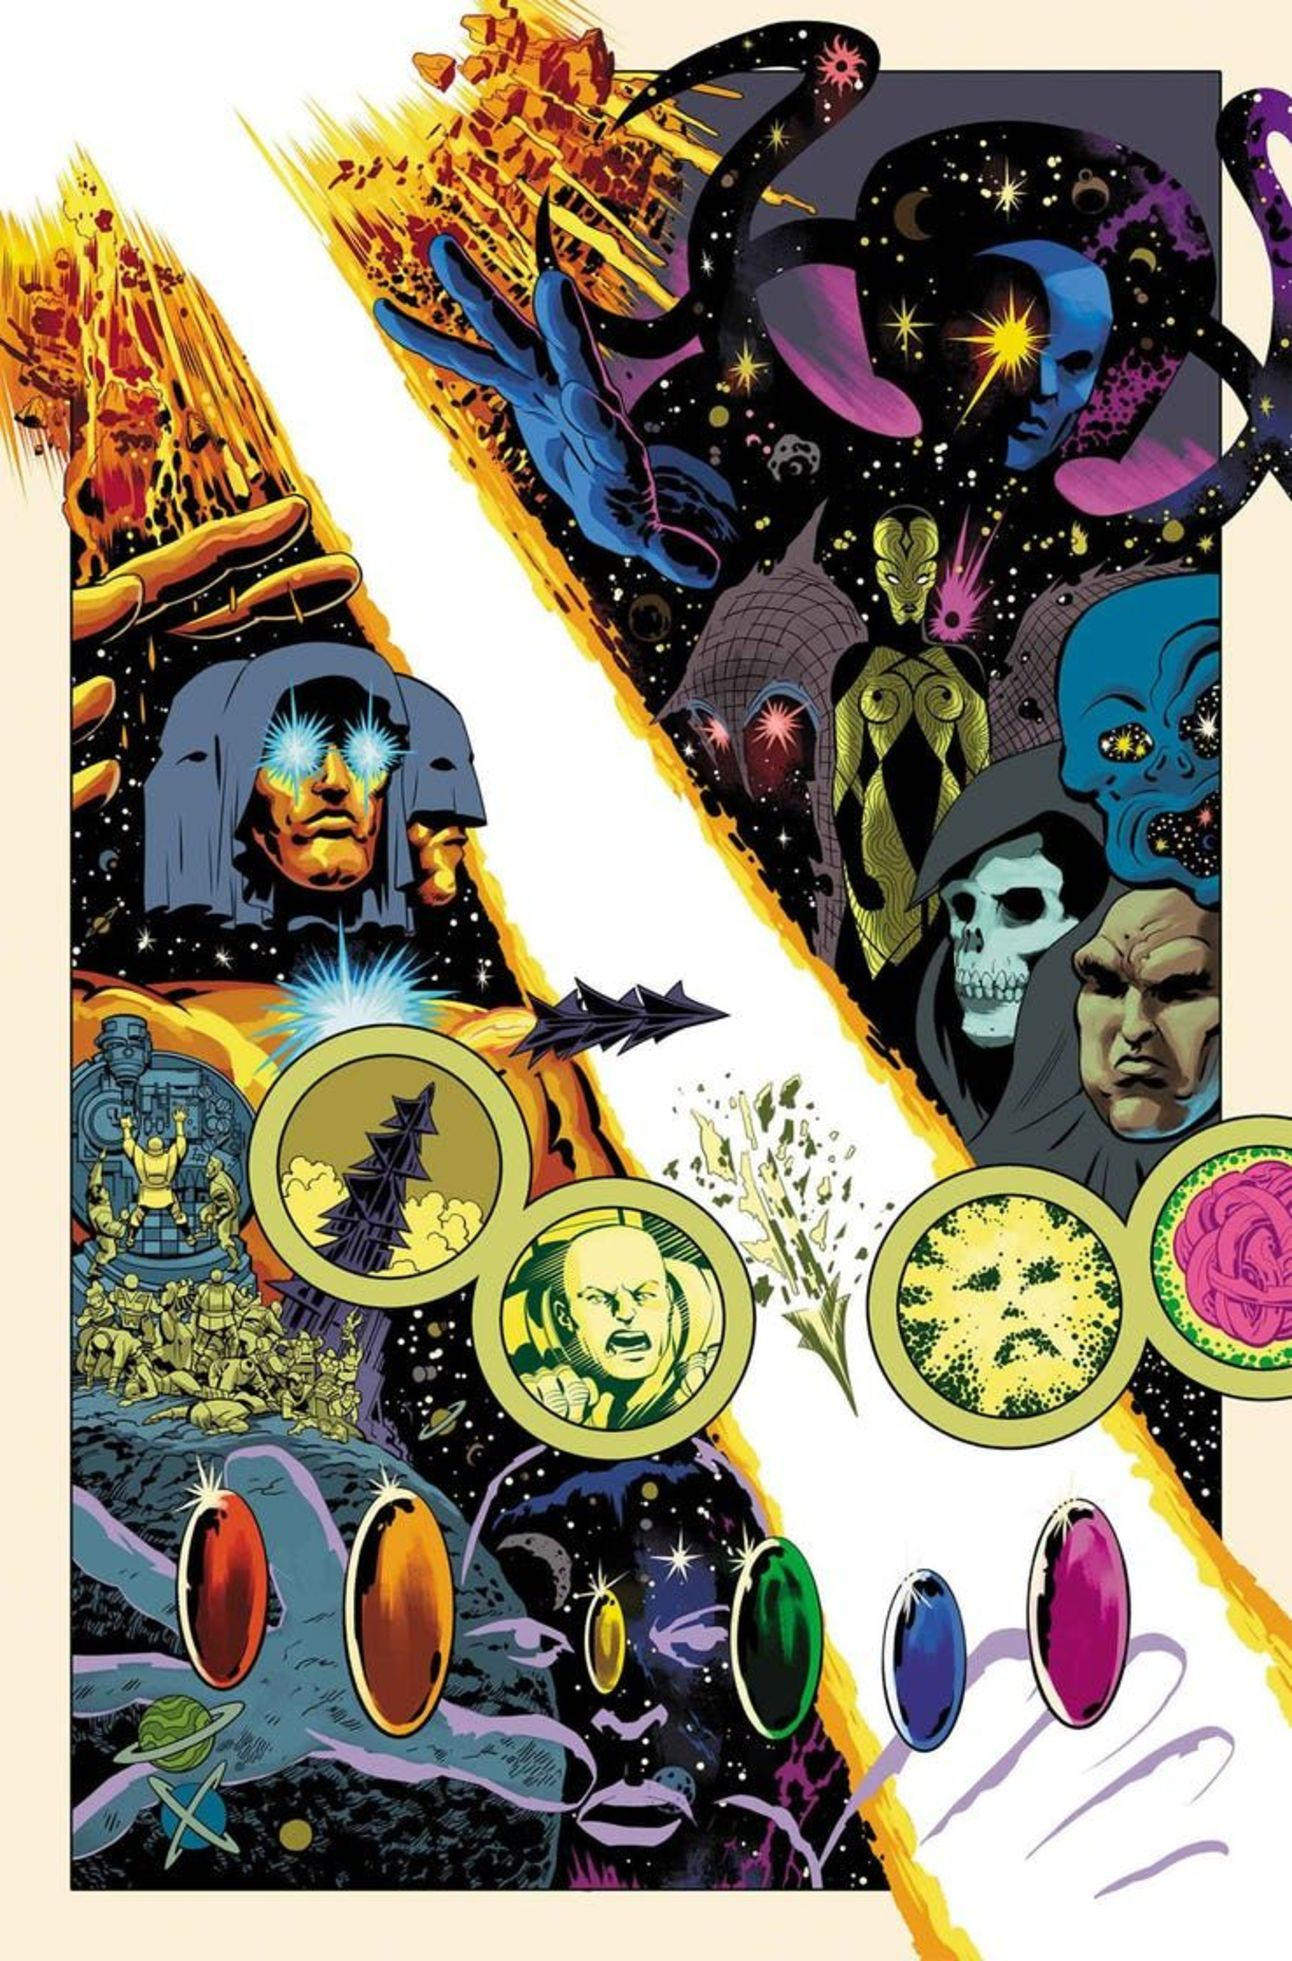 Marvel Comics single-issue solicitations for July 2019